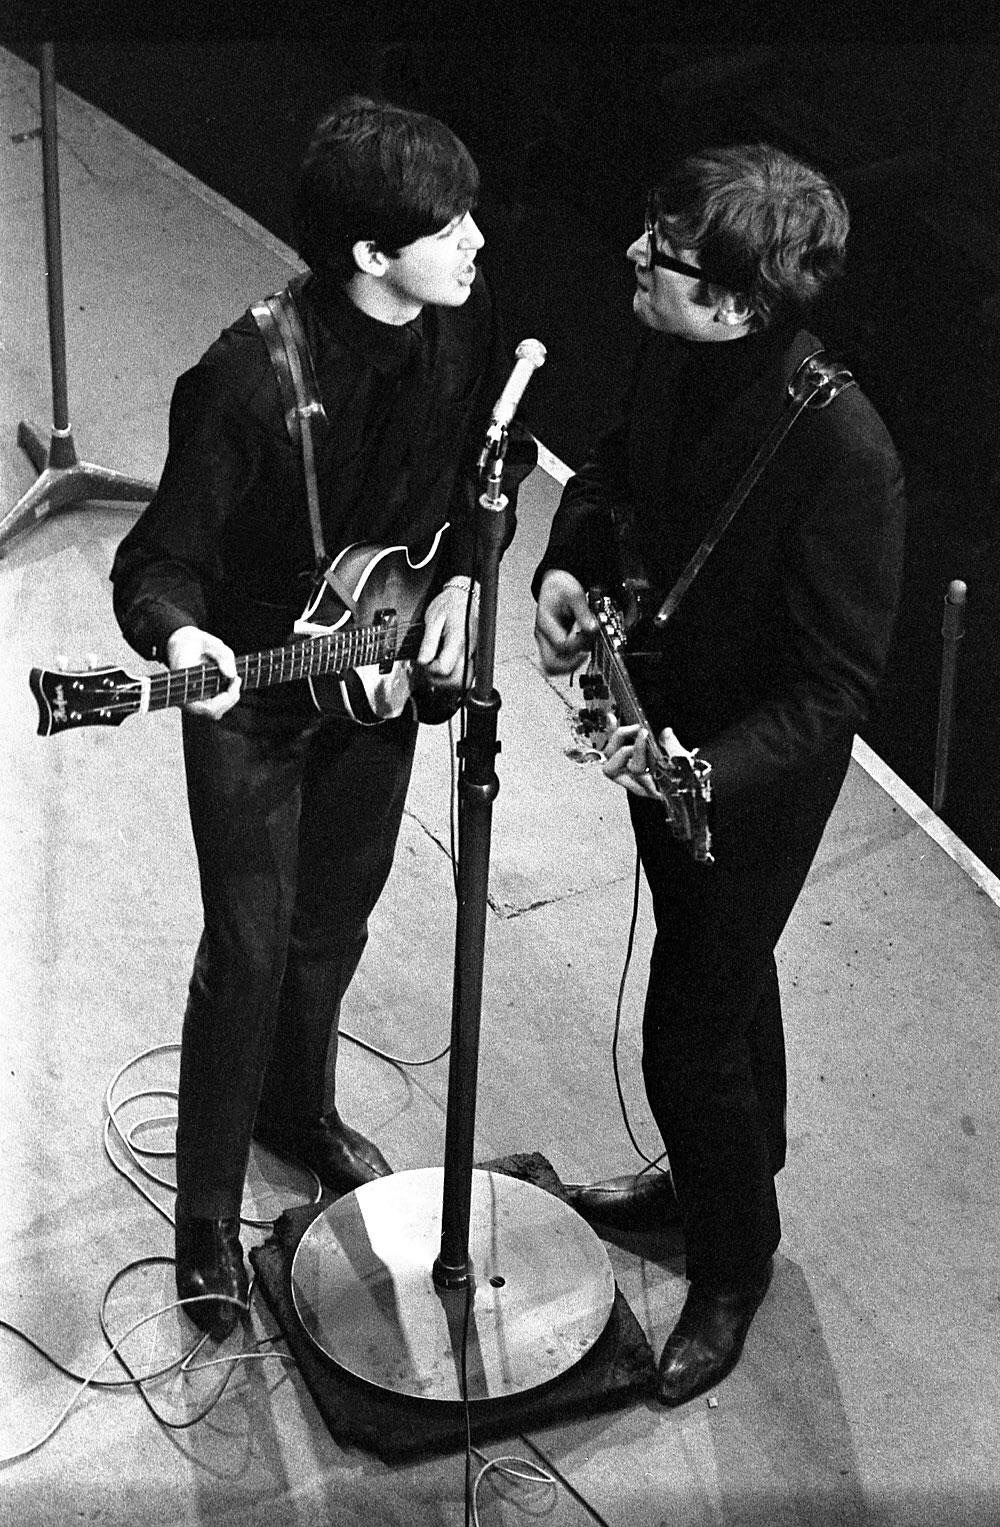 John Lennon and Paul McCartney at the BBC, 1963.